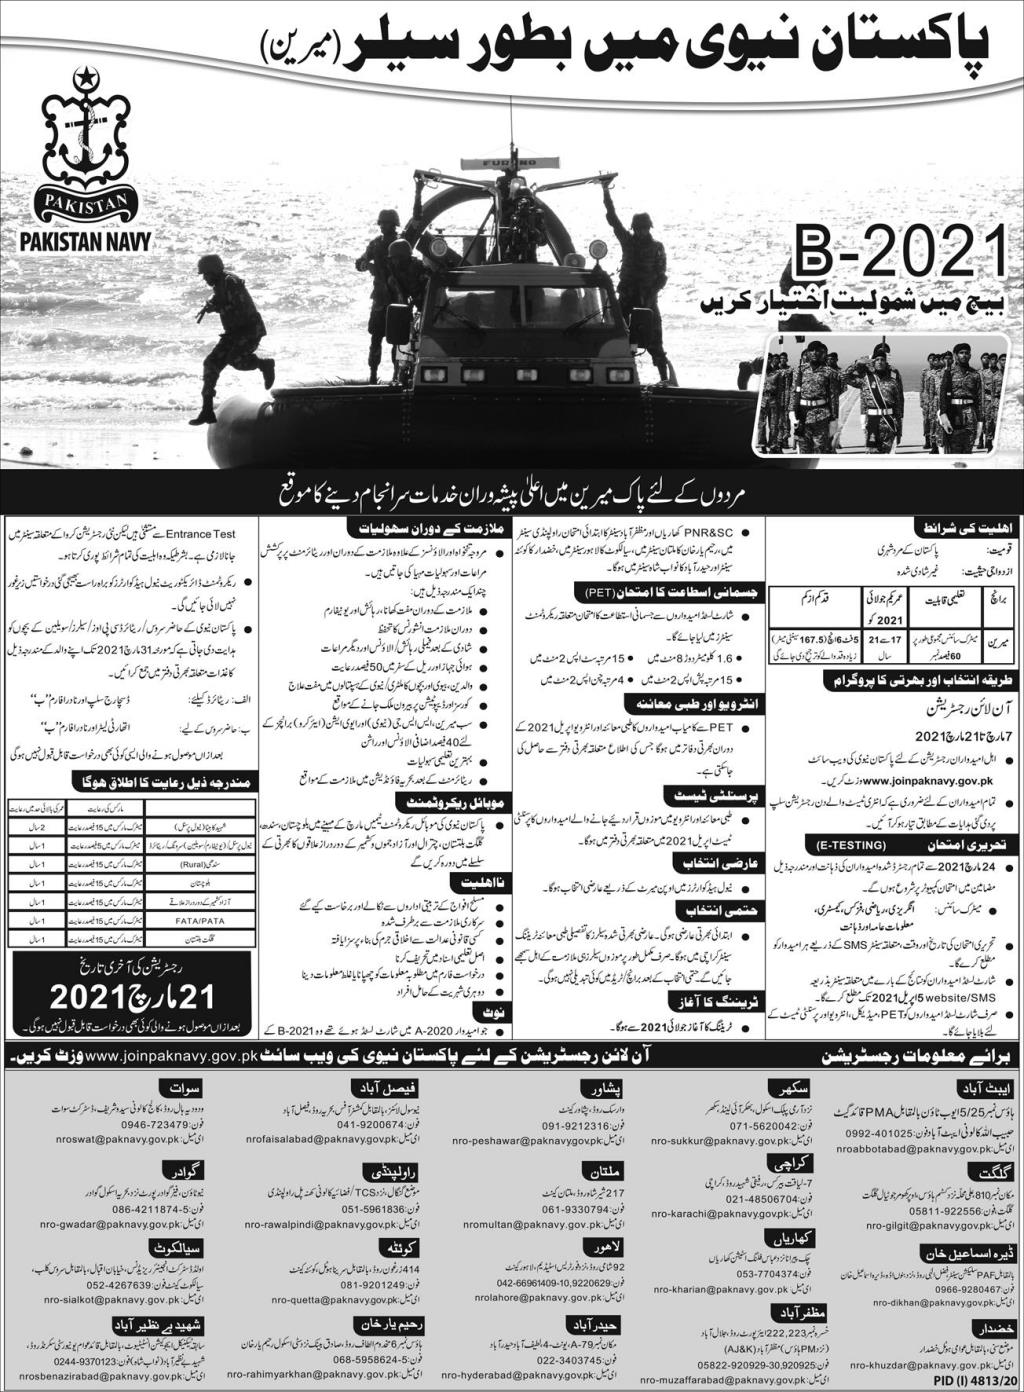 Join Pakistan Navy as Sailor 2021 Online Registration Join in B-2021 Batch Latest